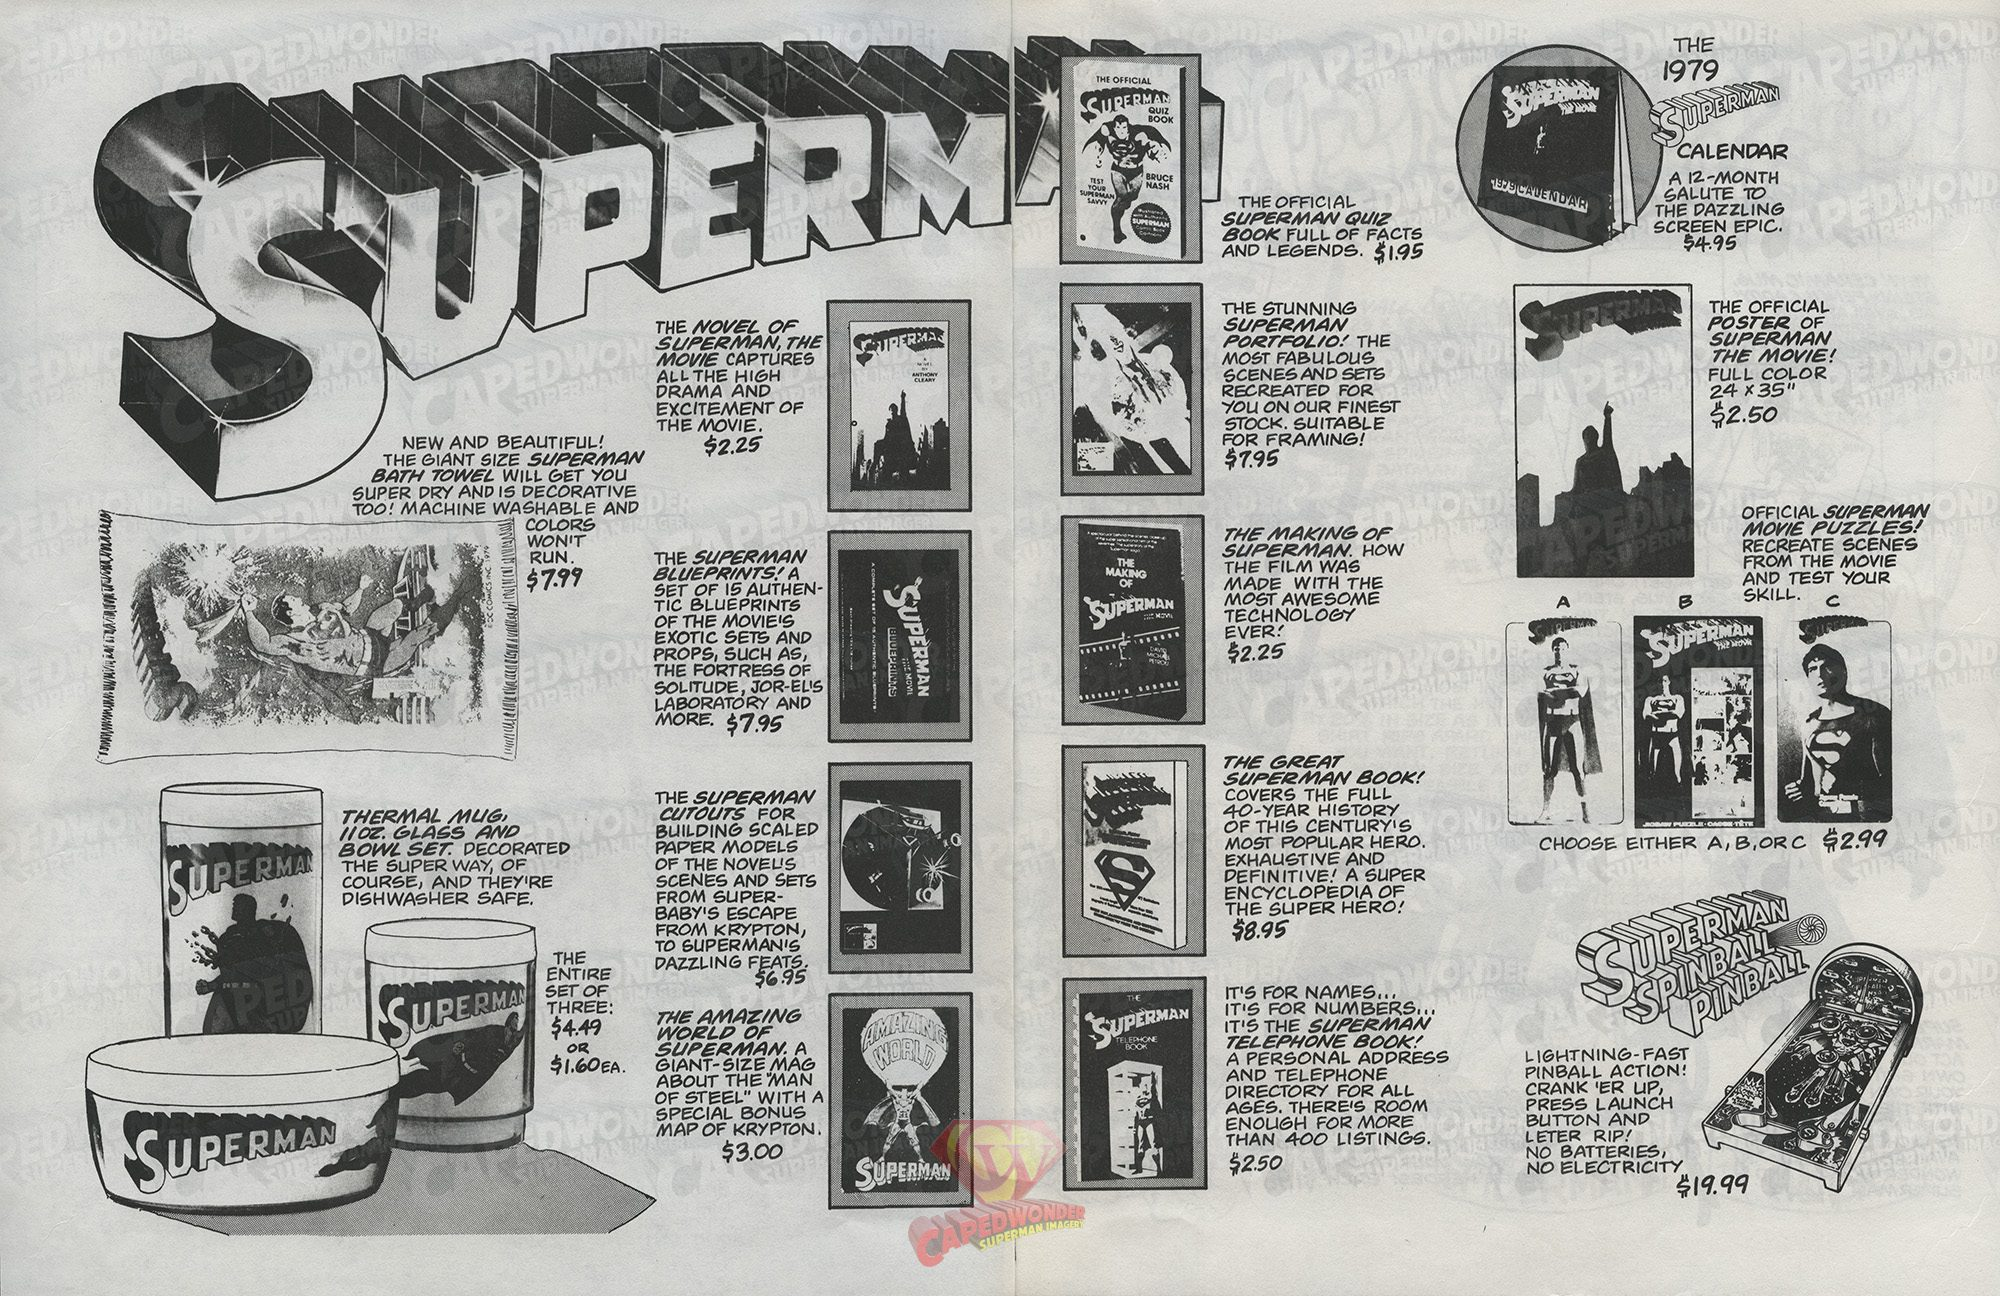 CW-STM-Heroes-World-Centers-brochure-Feb-17-1979-02